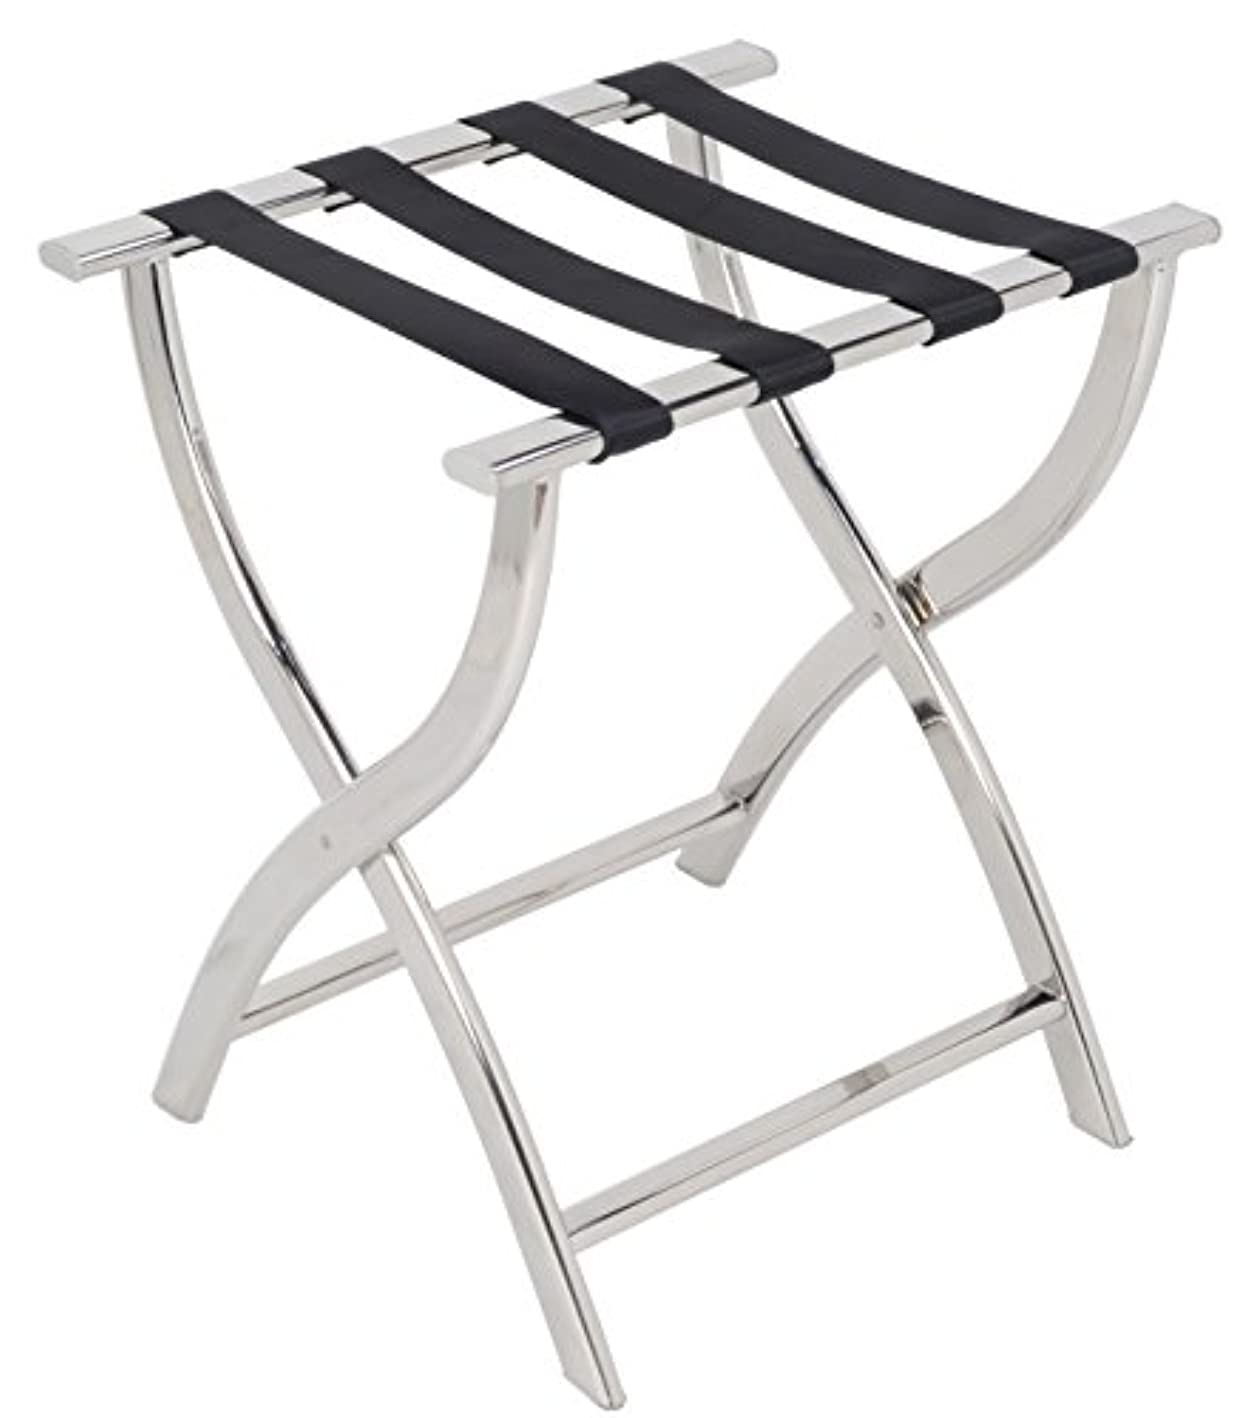 AMENITIES DEPOT Folding Chrome Stainless Steel Luggage Rack (J-12A)